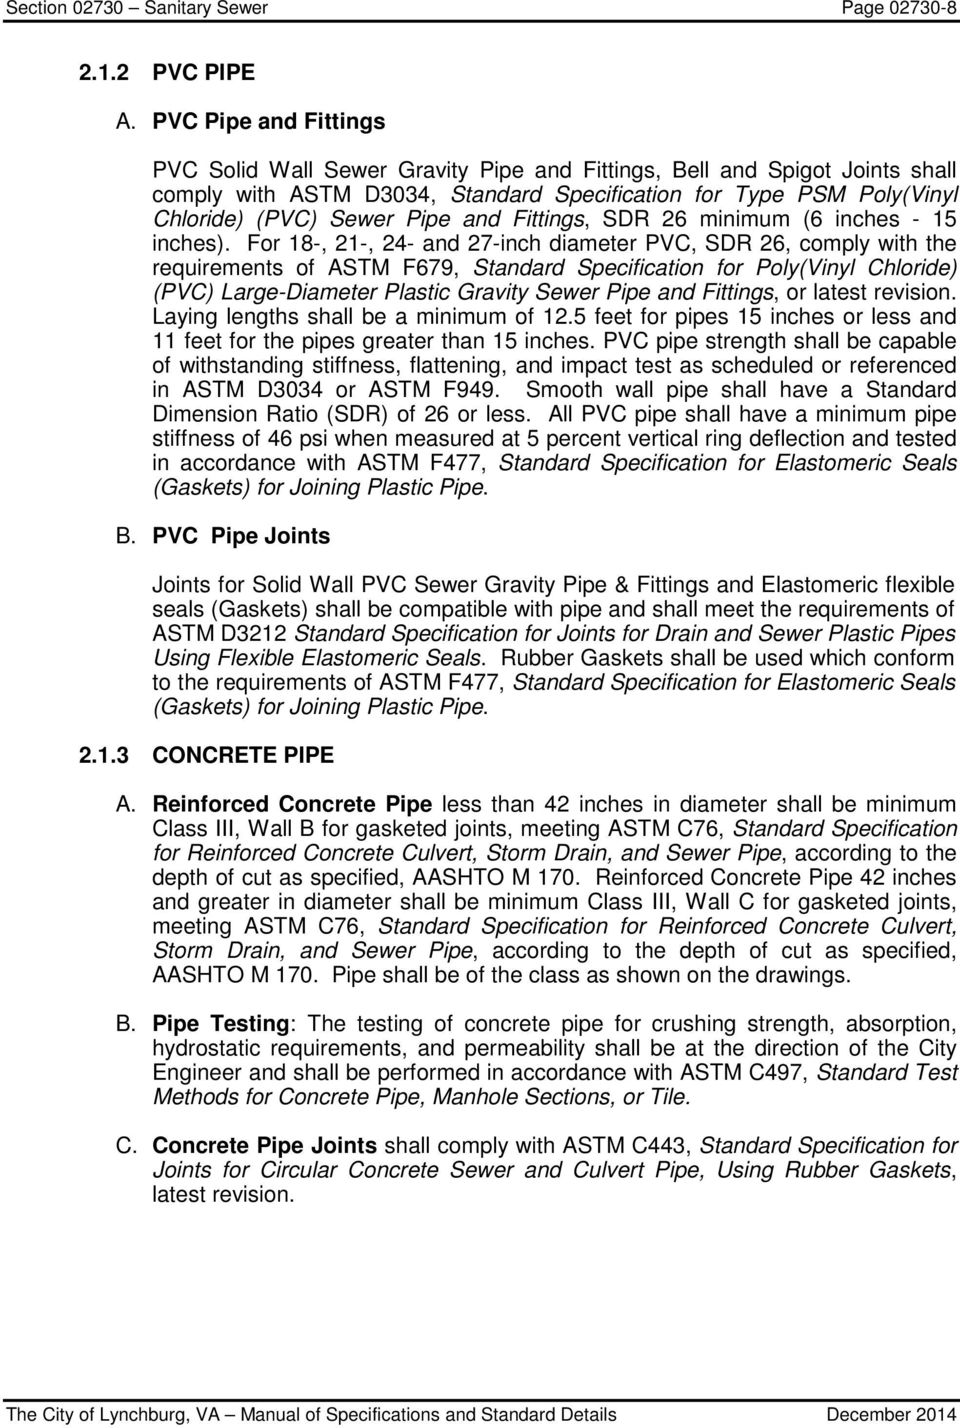 Section Sanitary Sewer Page - PDF